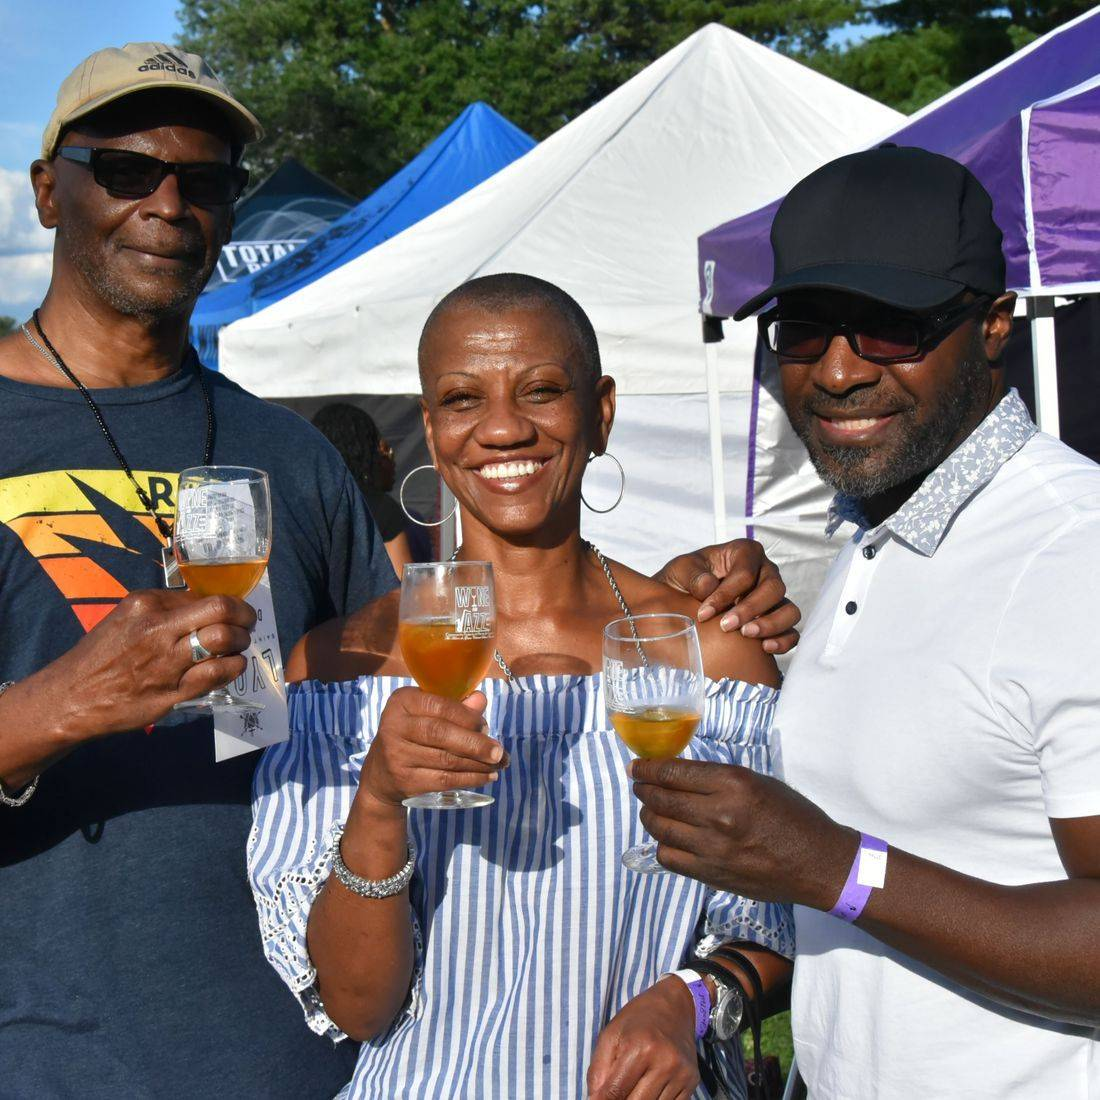 guests smiling with drinks at festival